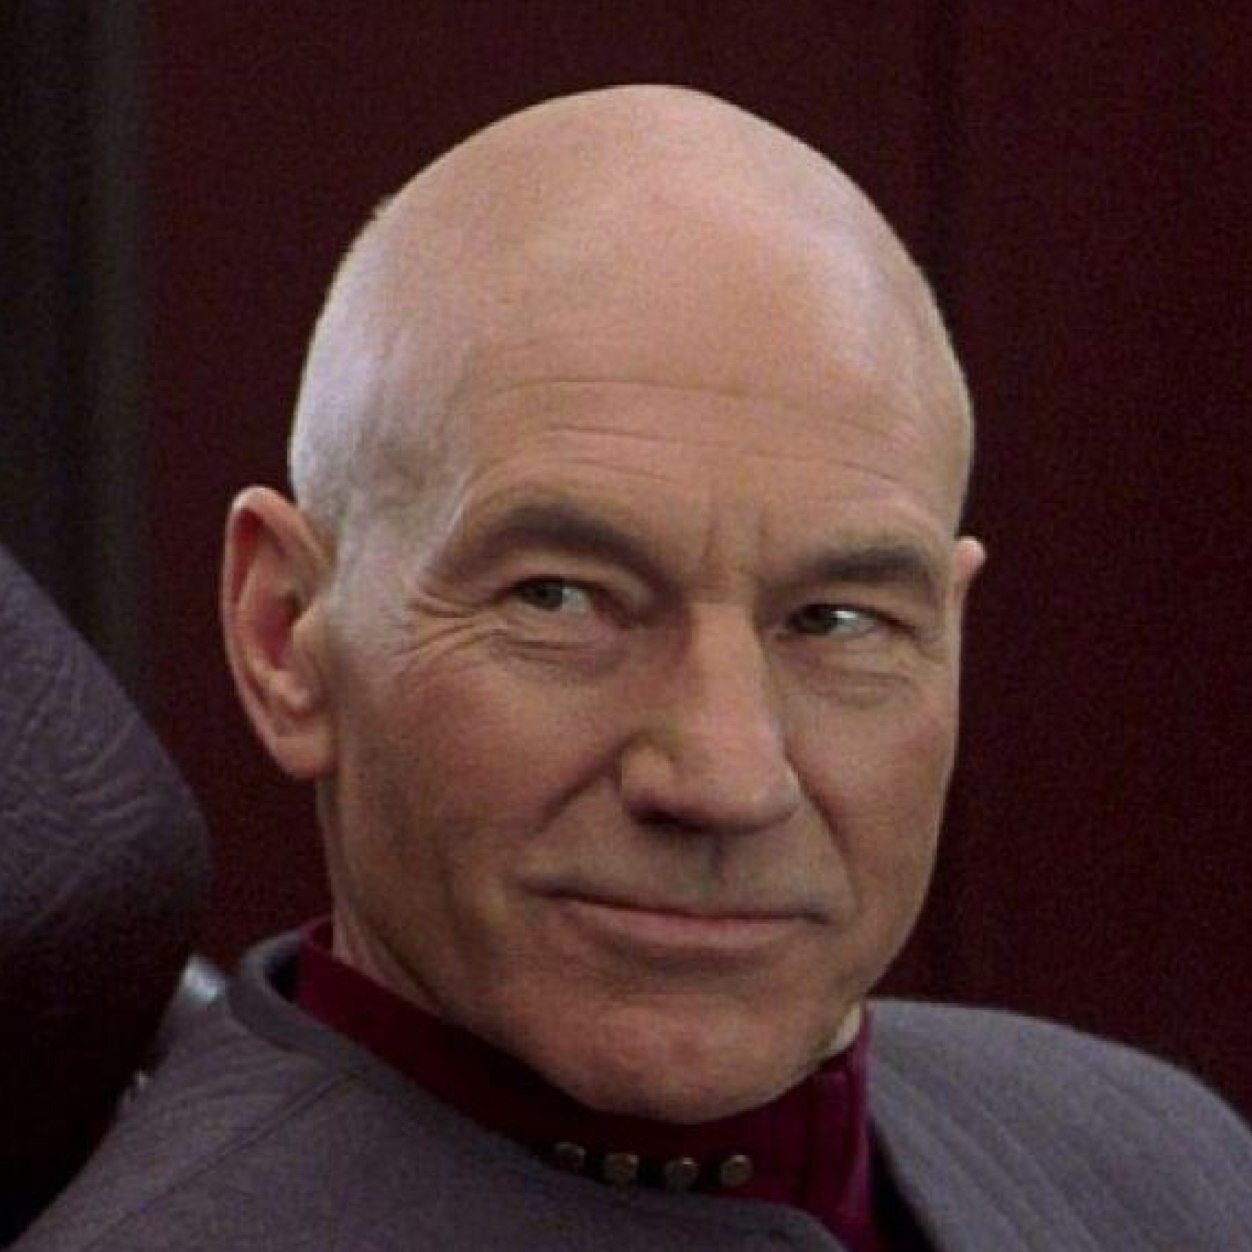 Picard Tips